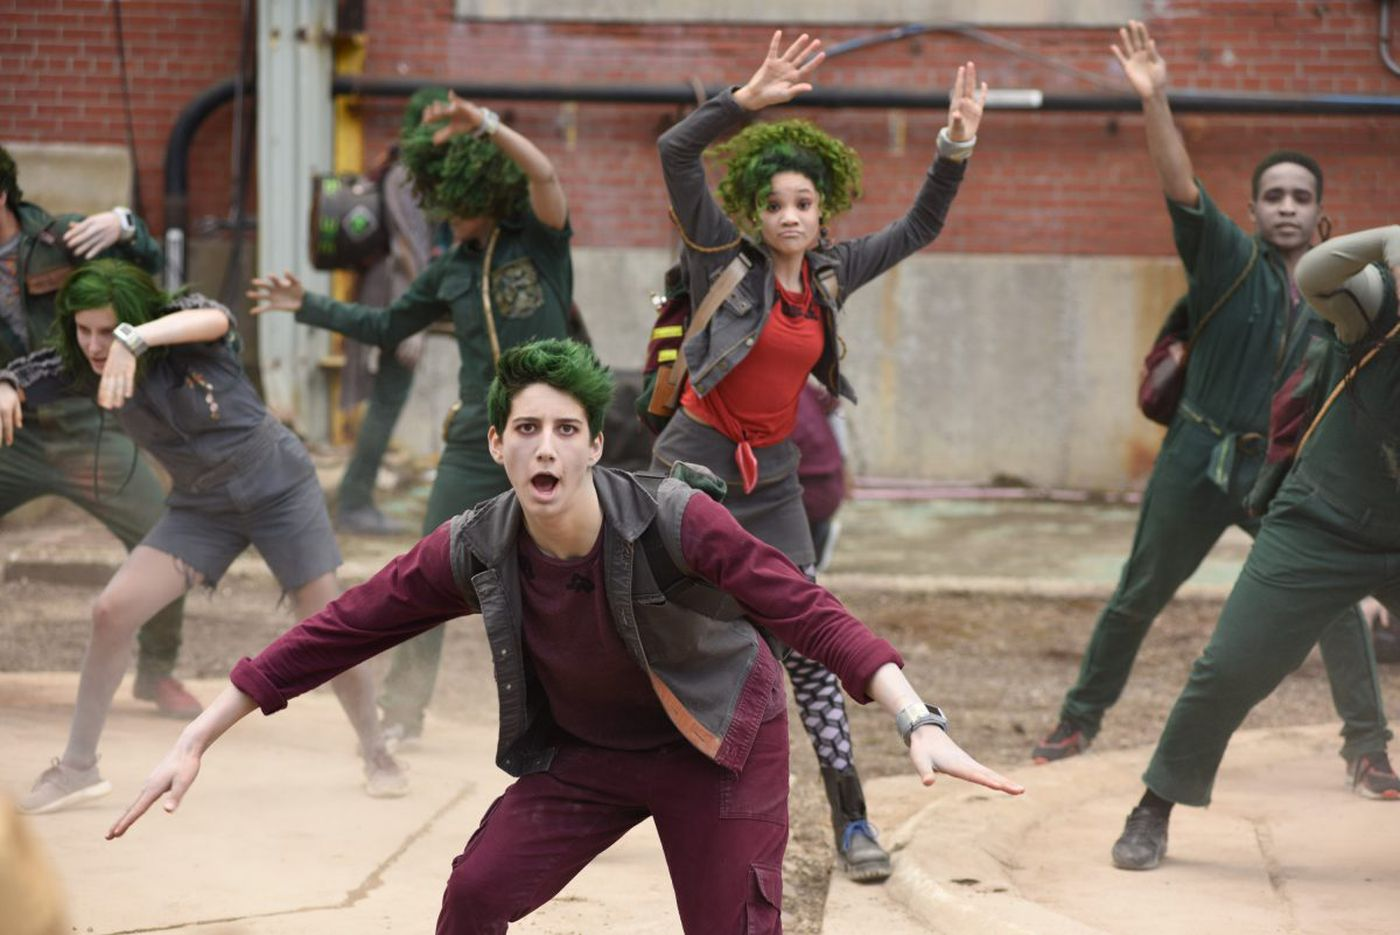 In Disney Channel's 'Zombies' musical, Montco native found medium to send a message